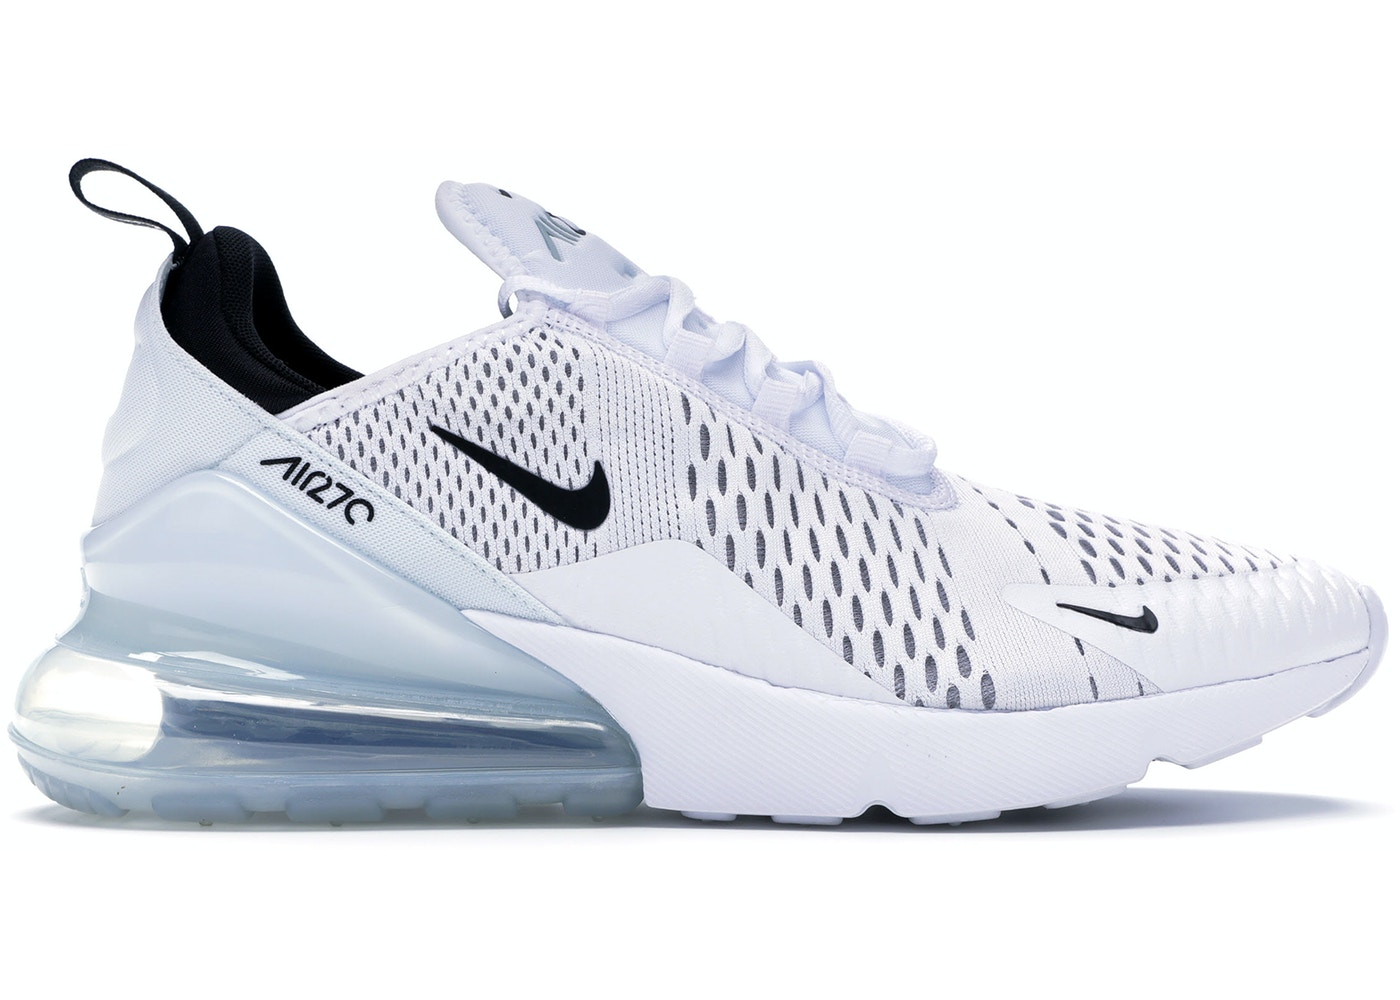 b095c63d Air Max 270 White Black - AH8050-100